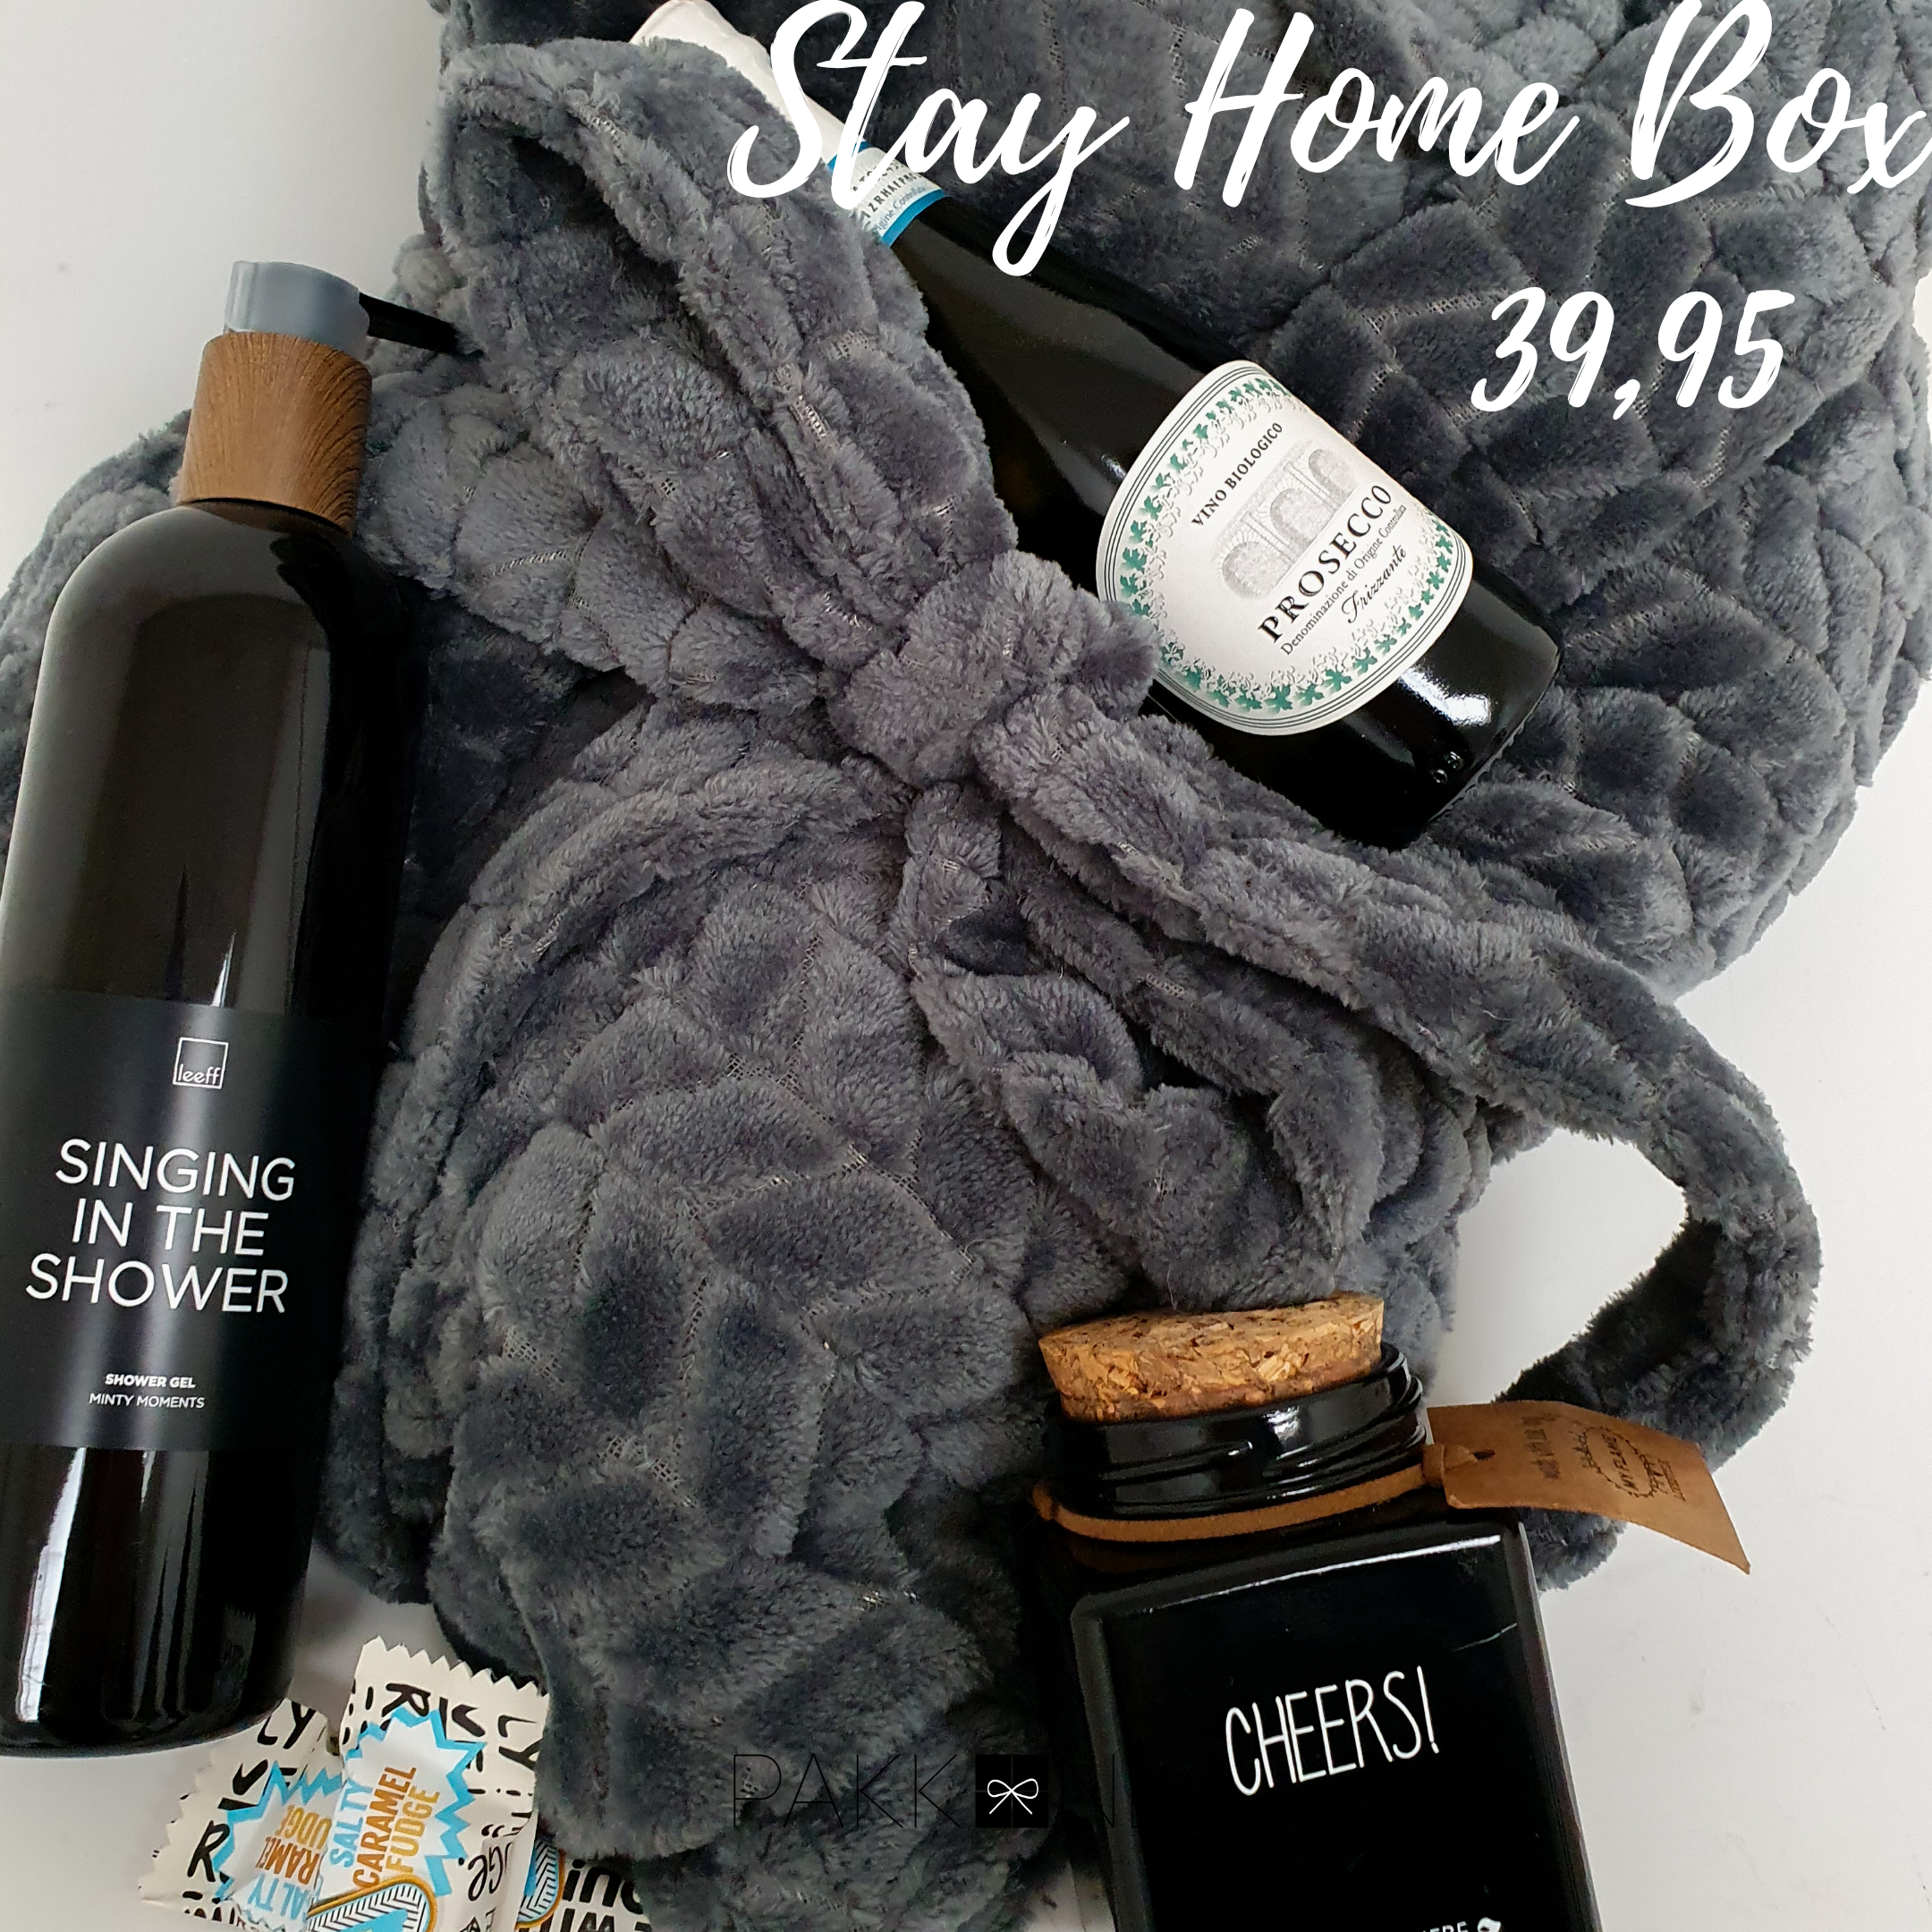 Stay Home Box 2